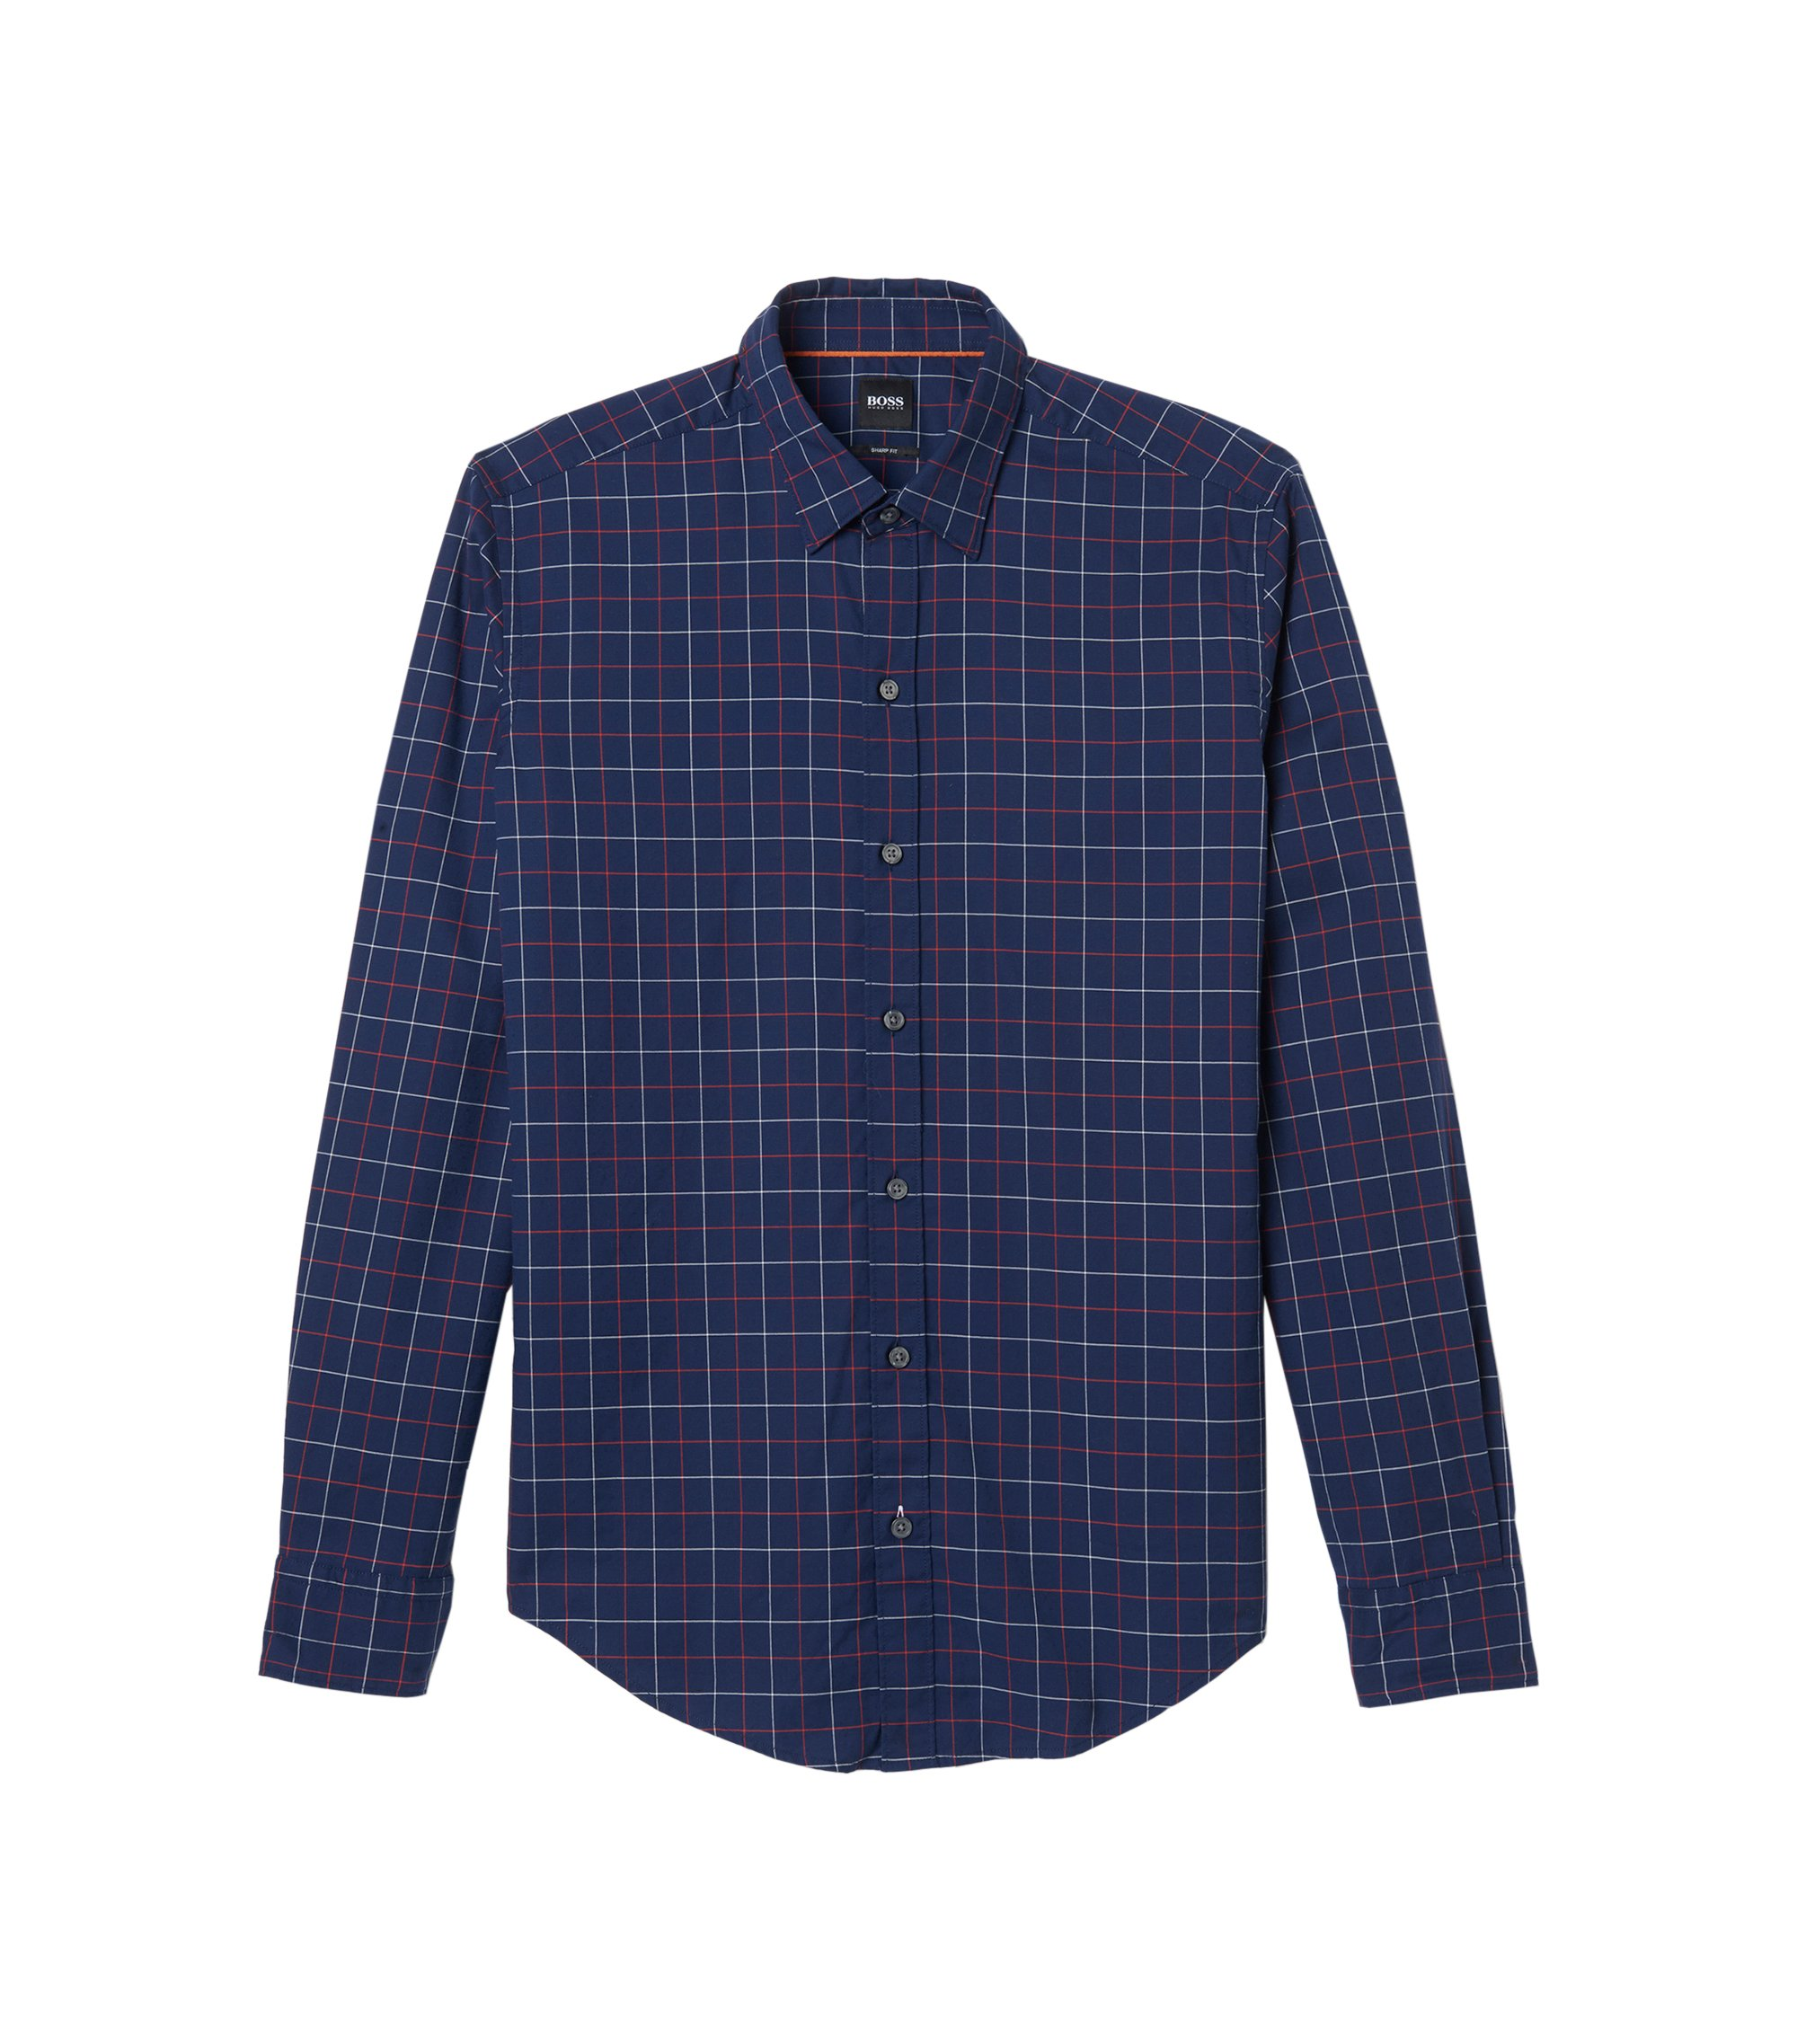 Plaid Cotton Sport Shirt, Sharp Fit  | Robbie, Orange